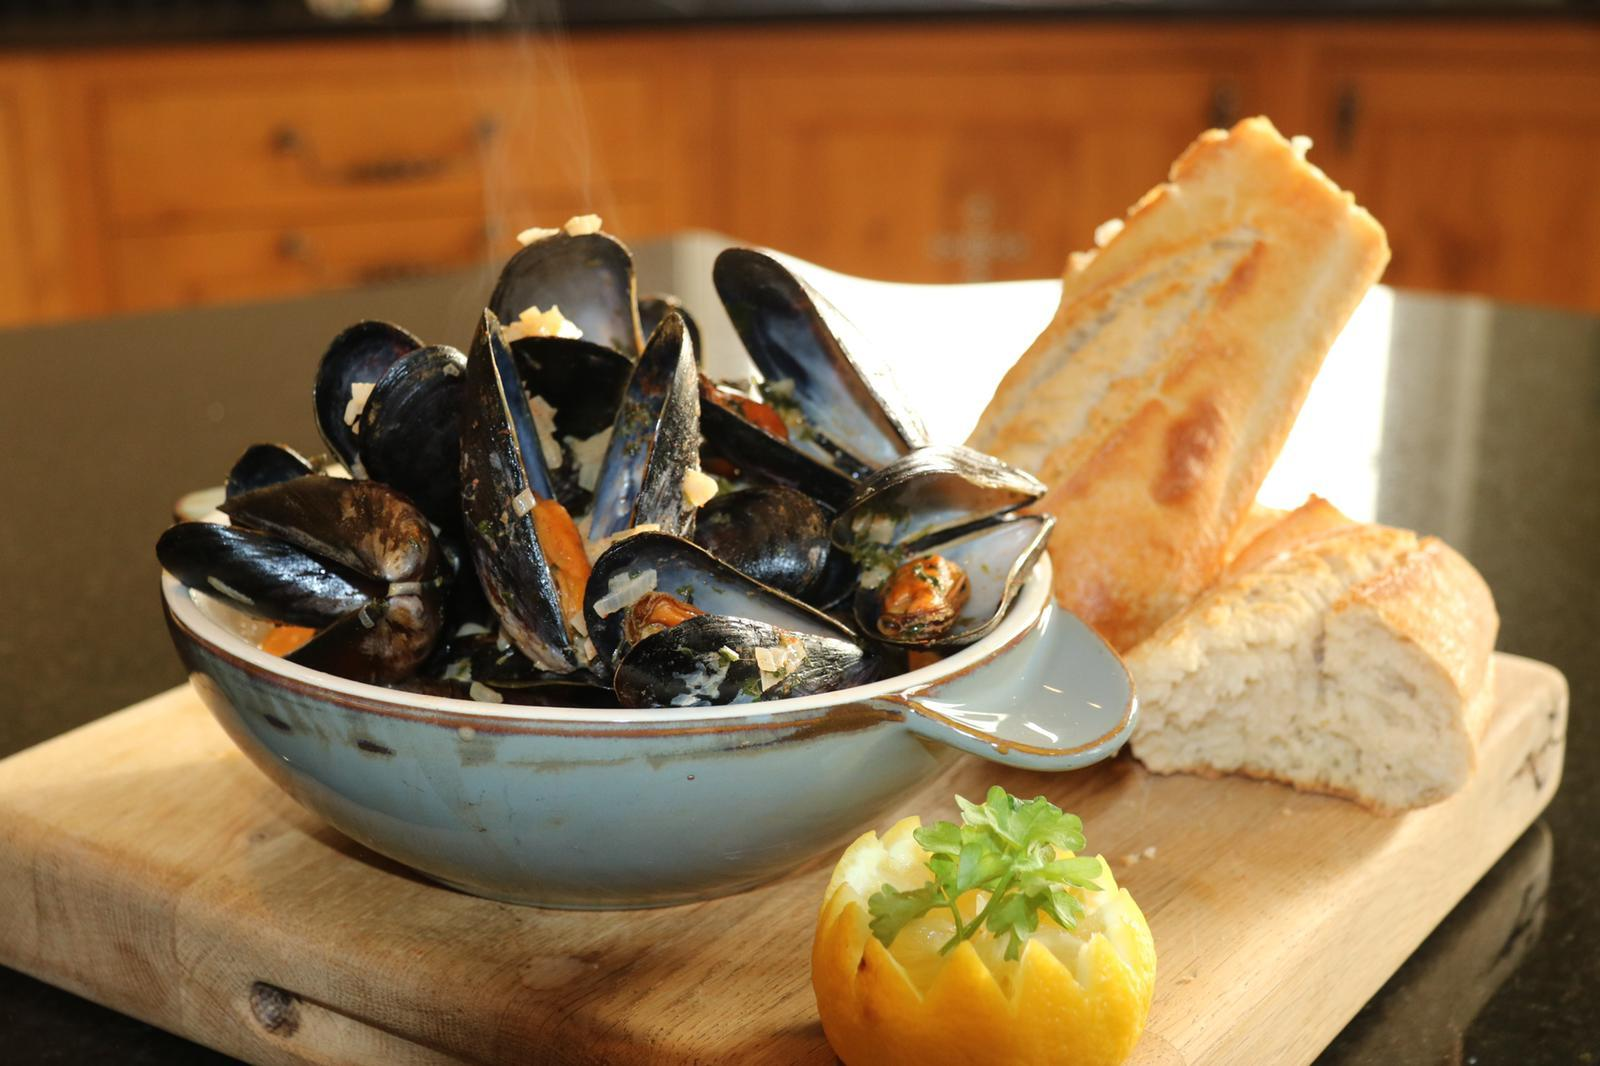 Steamed Mussels with Smoked Paprika & White Wine Cream Sauce by Siobhán Devereux Doyle